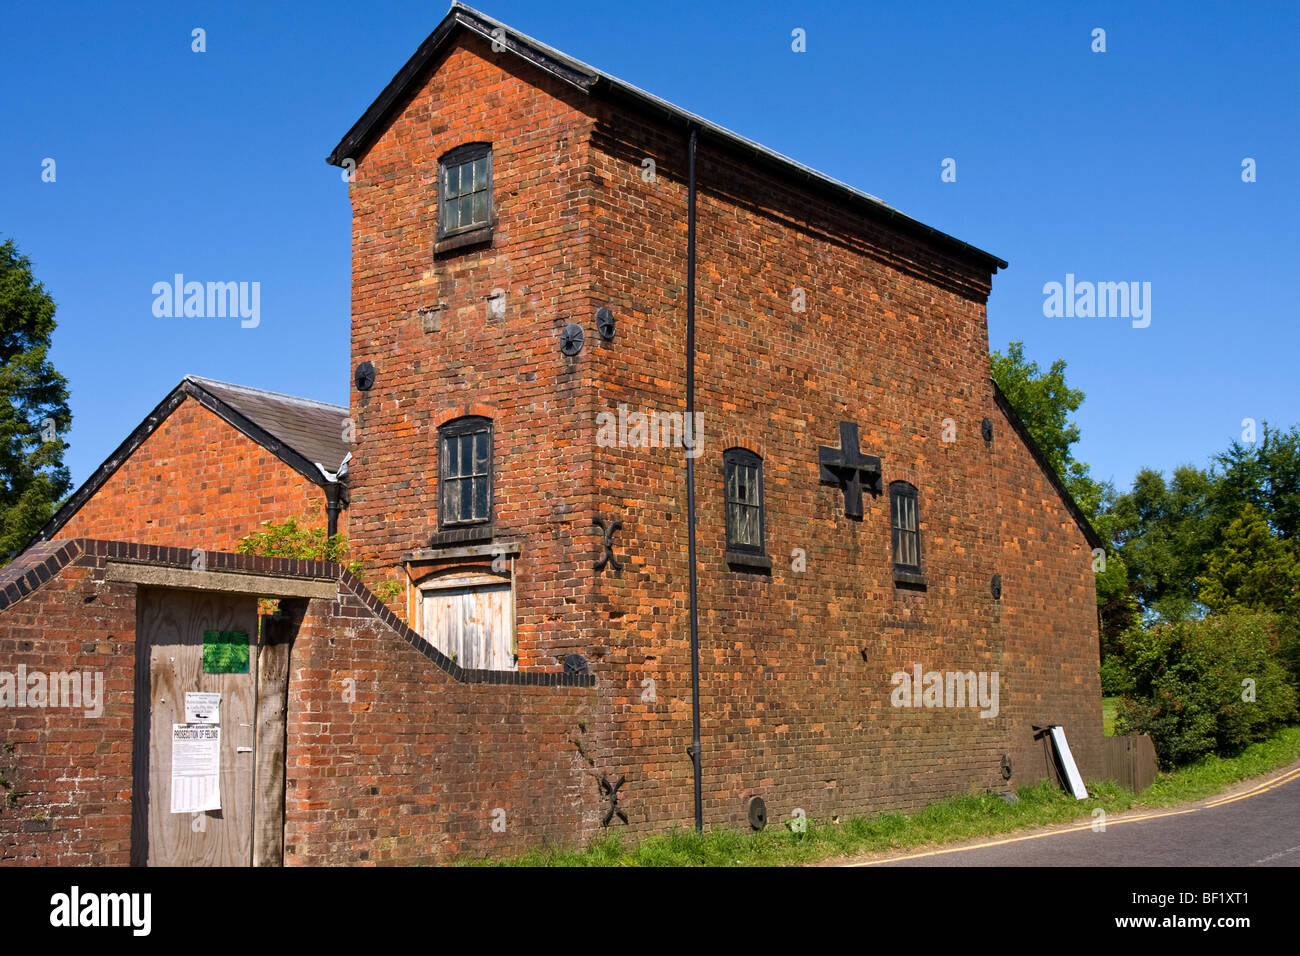 old building in need of restoration - Stock Image